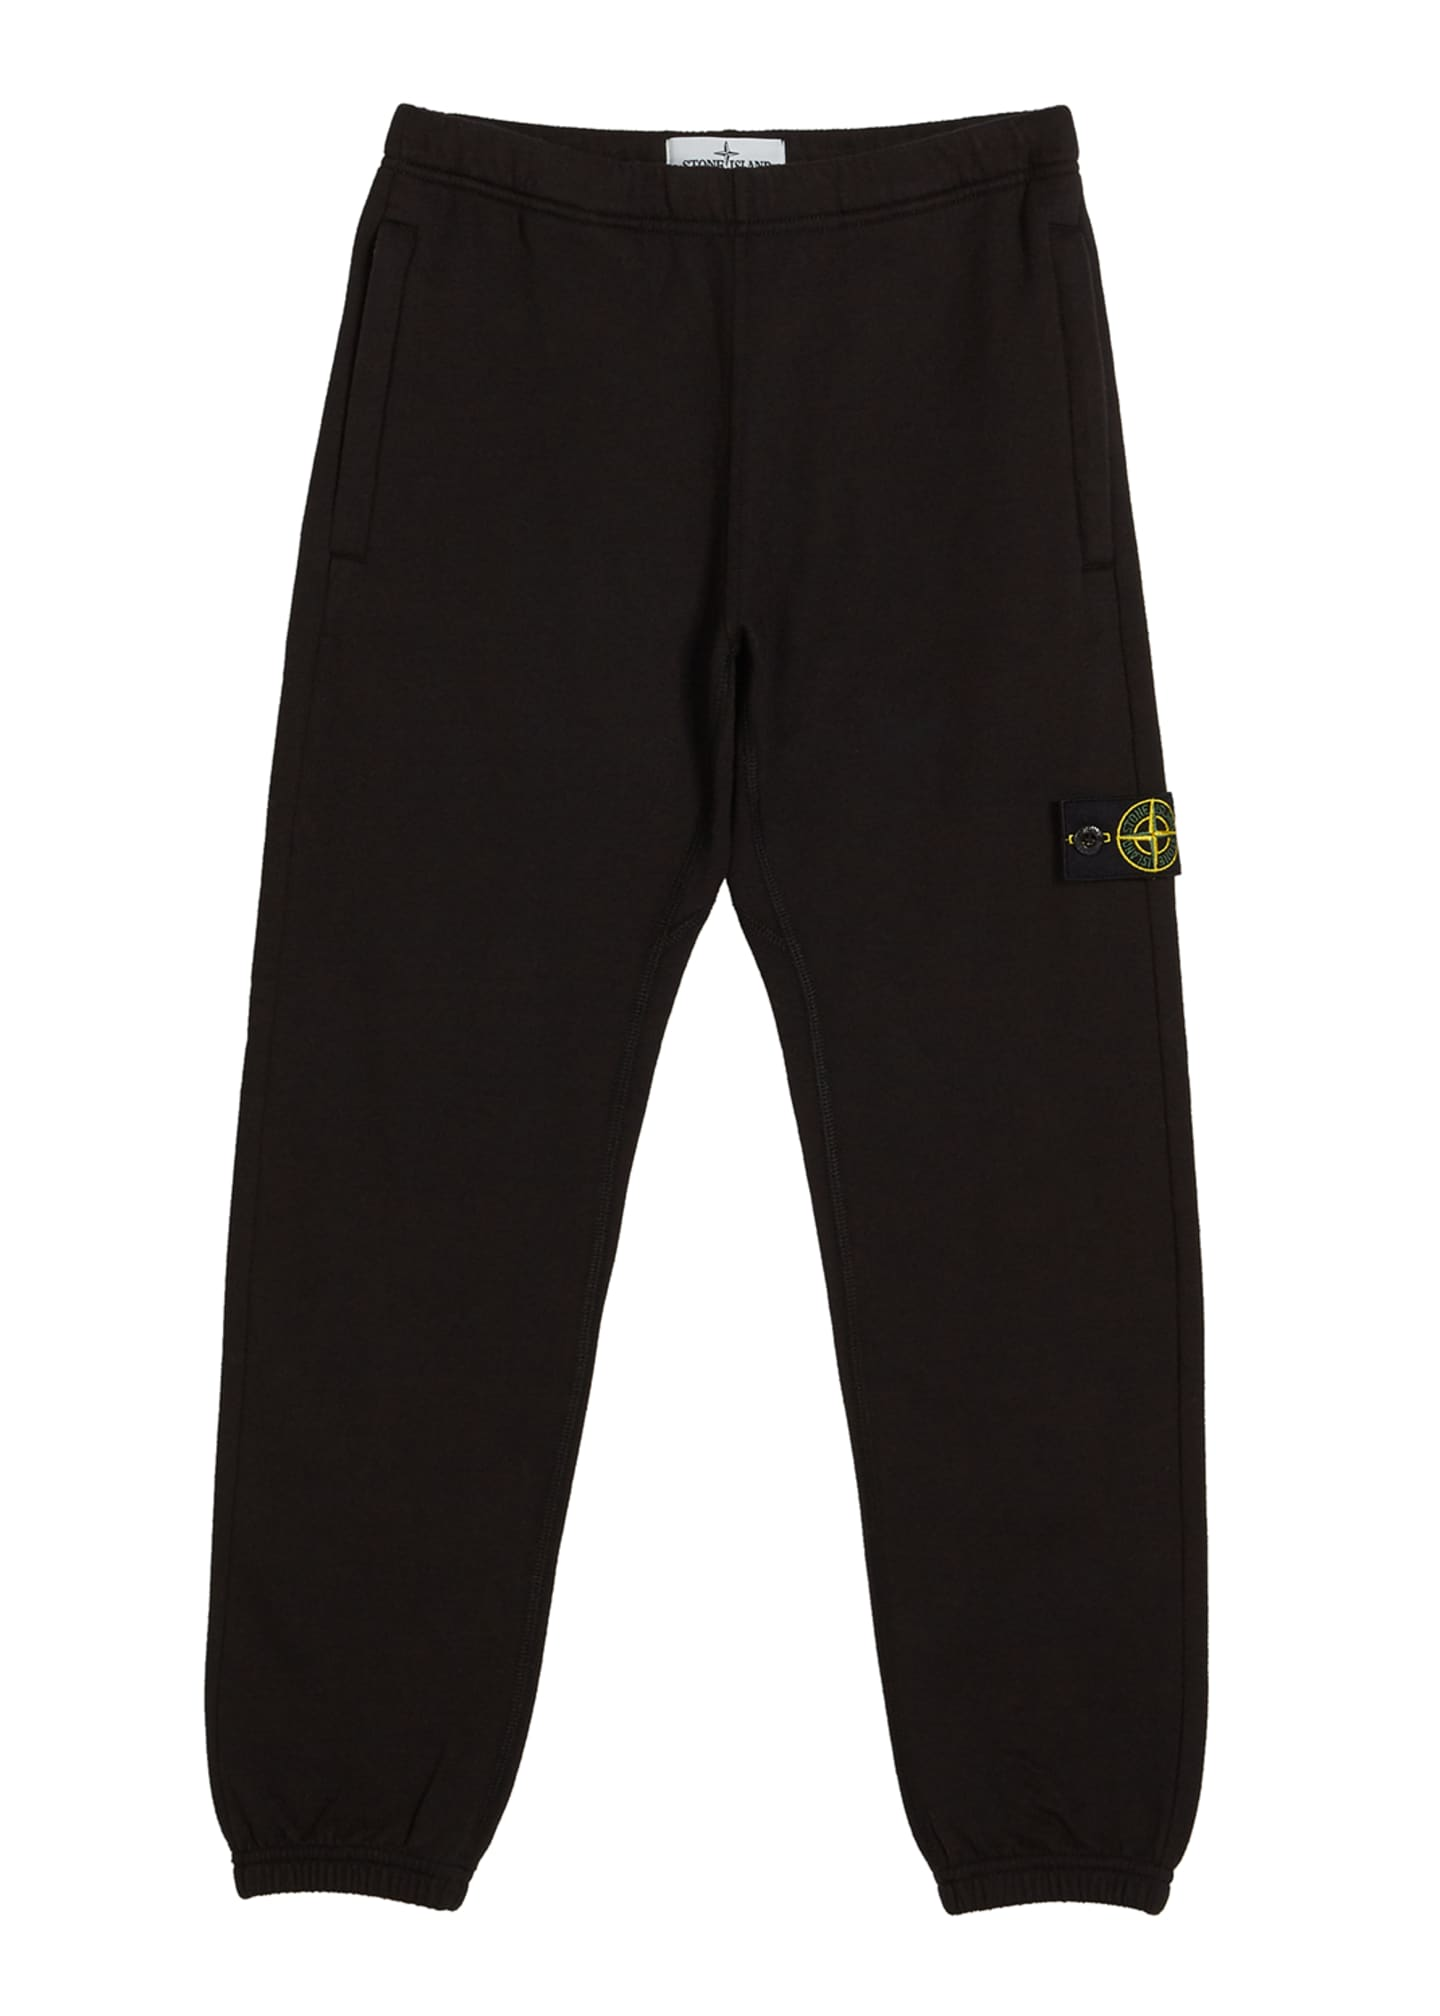 Stone Island Cotton Sweatpants w/ Reflective Tape Trim,